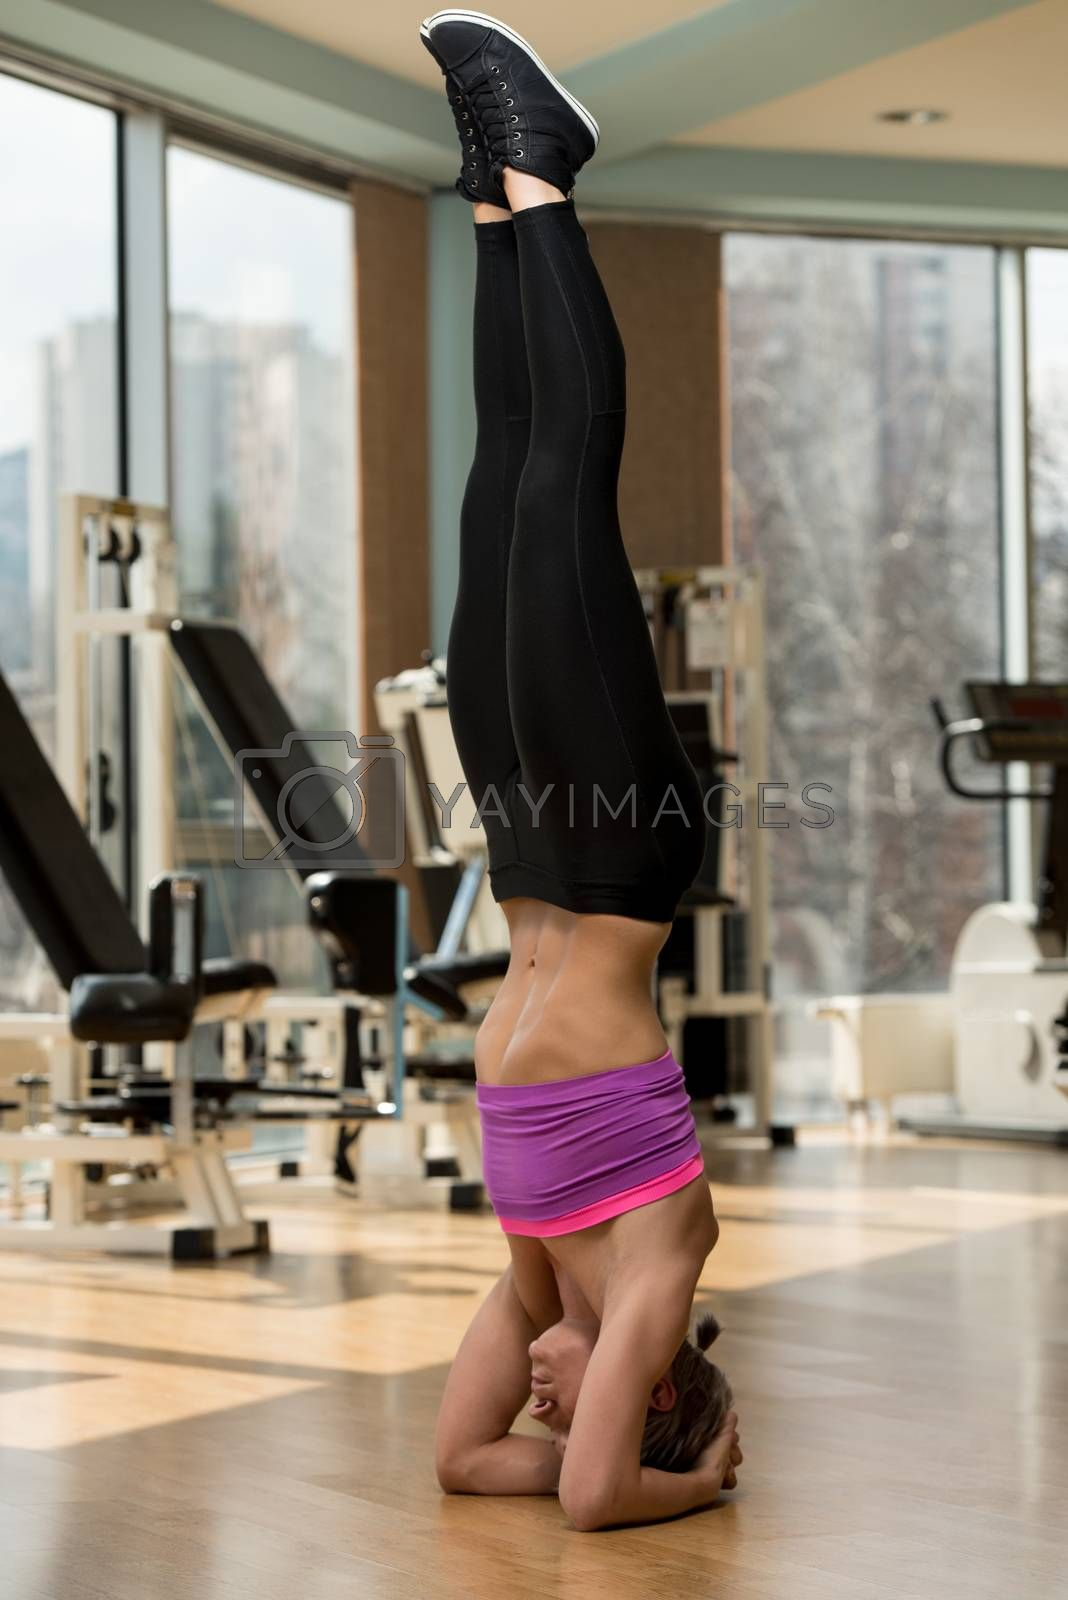 Royalty free image of Young Attractive Girl Doing The Headstand by JalePhoto